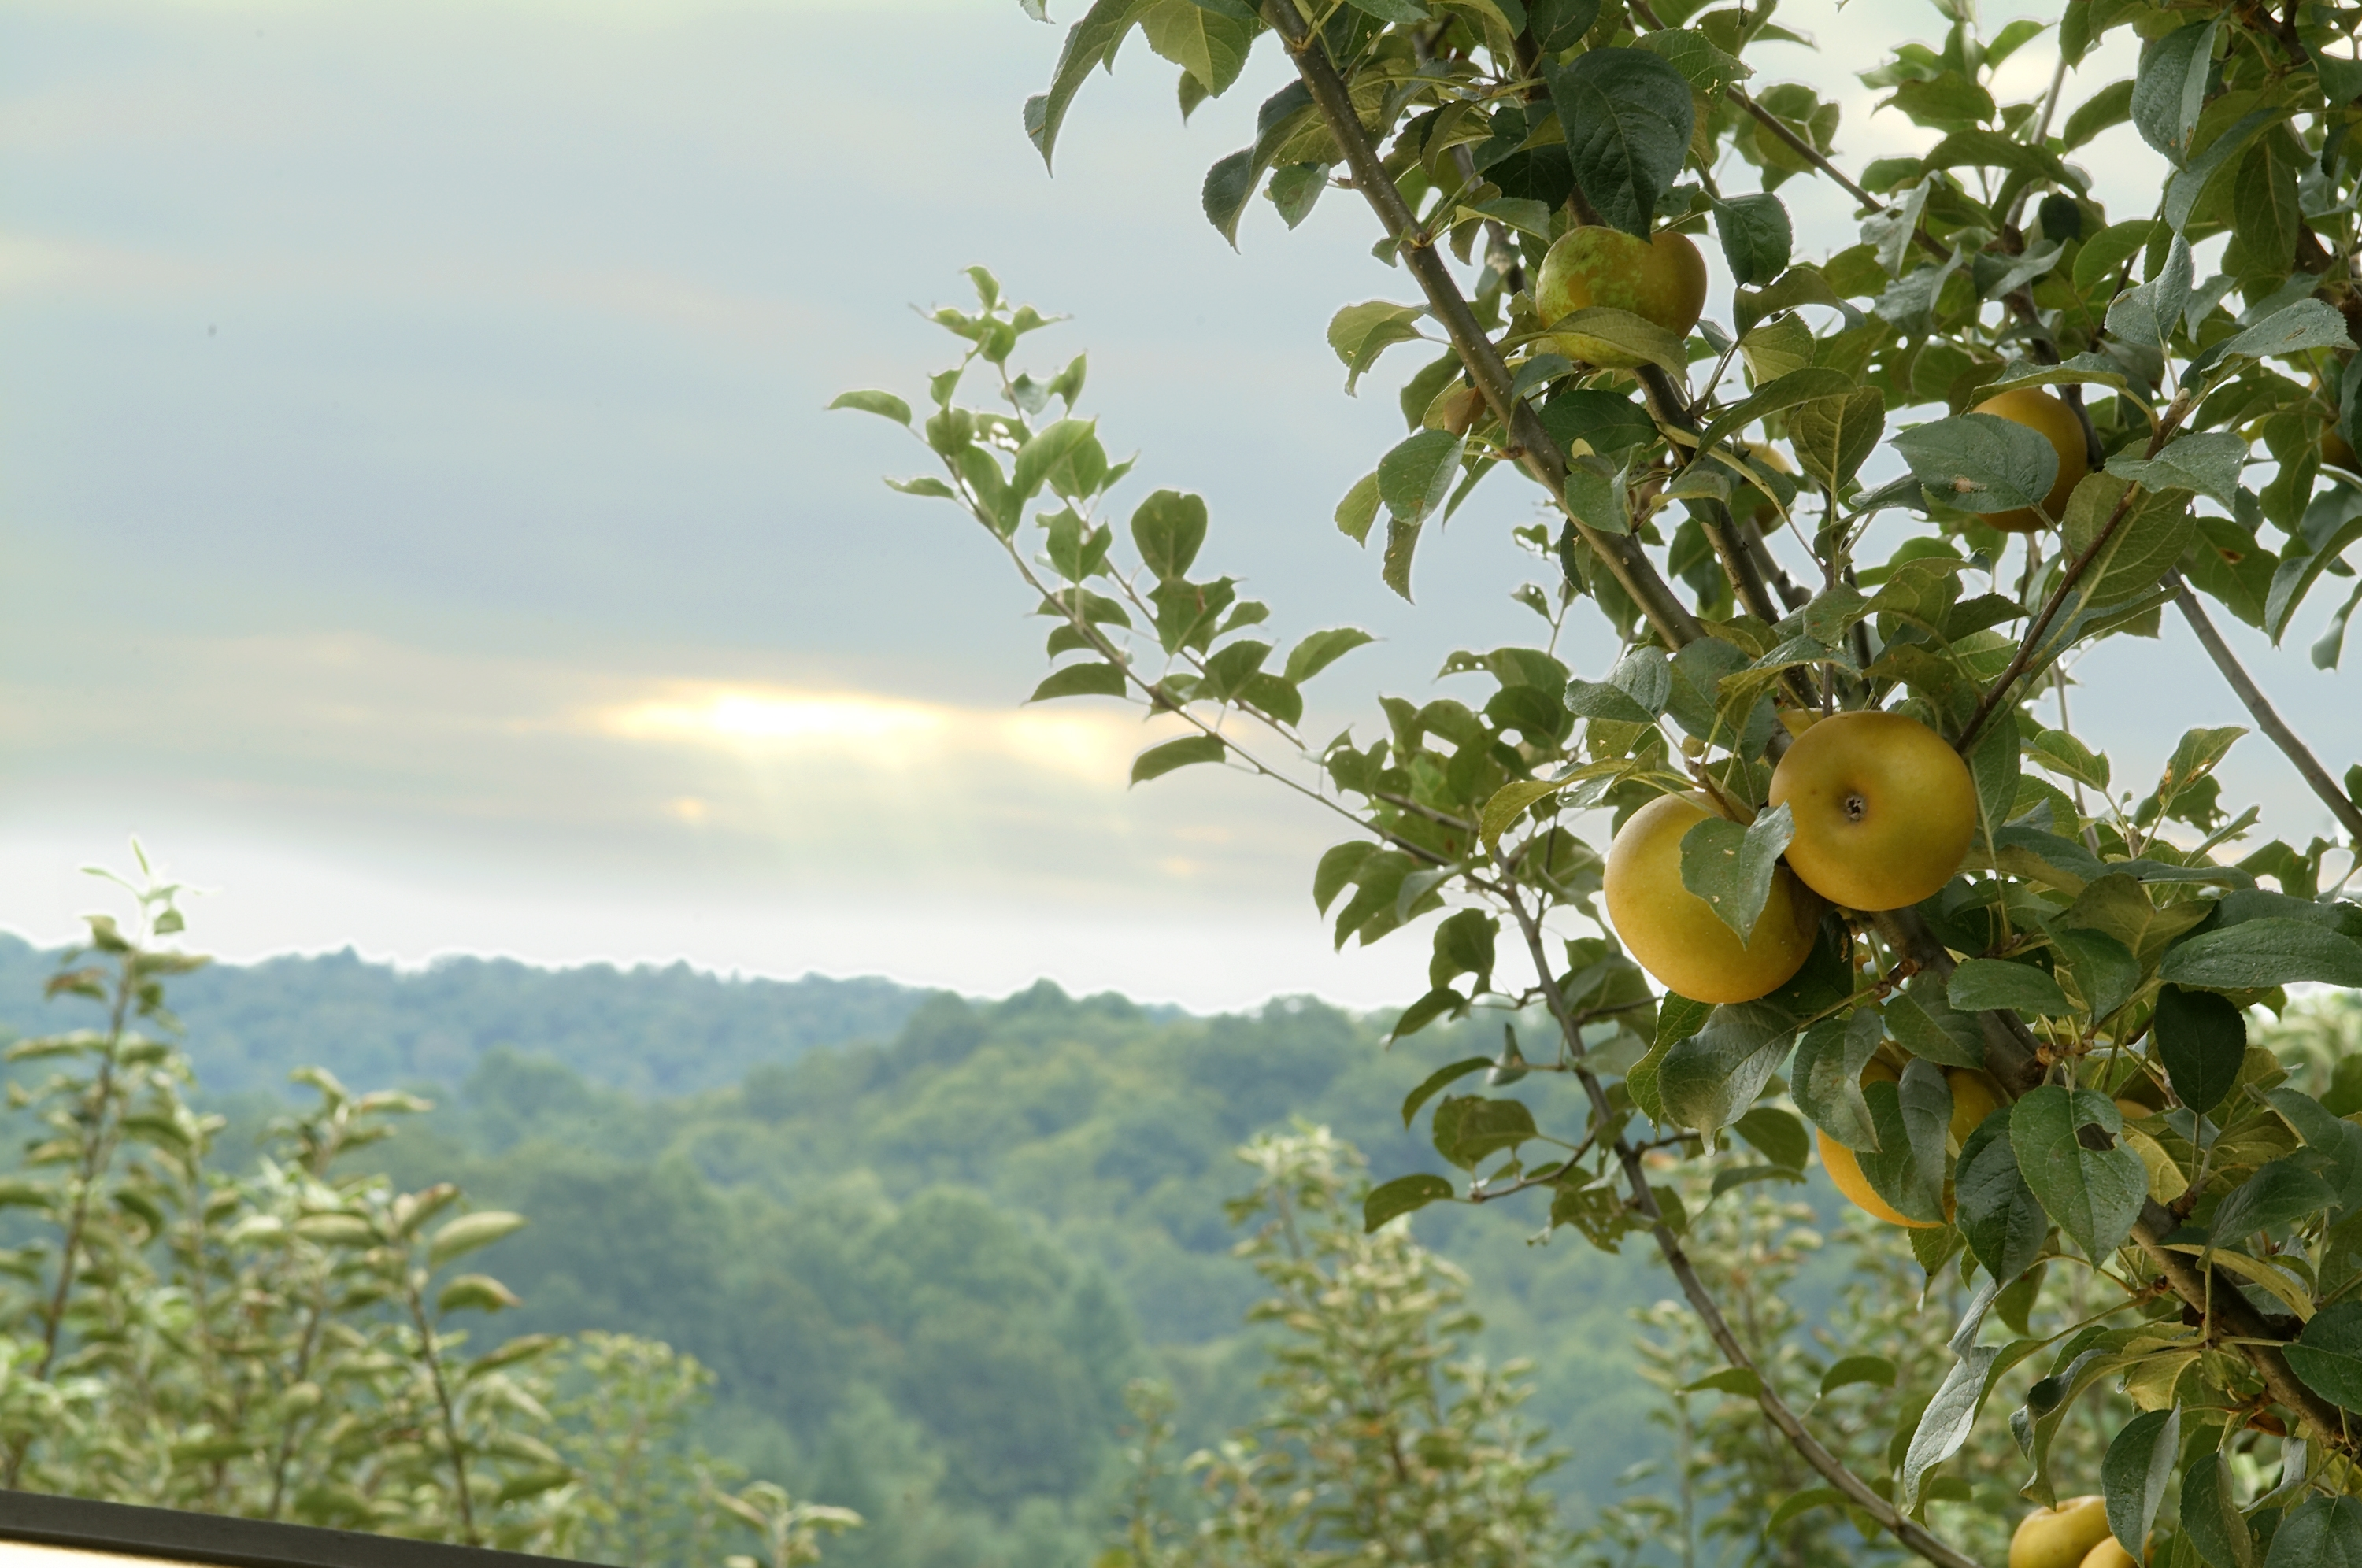 Hard cider orchards: Virginia's other wine country